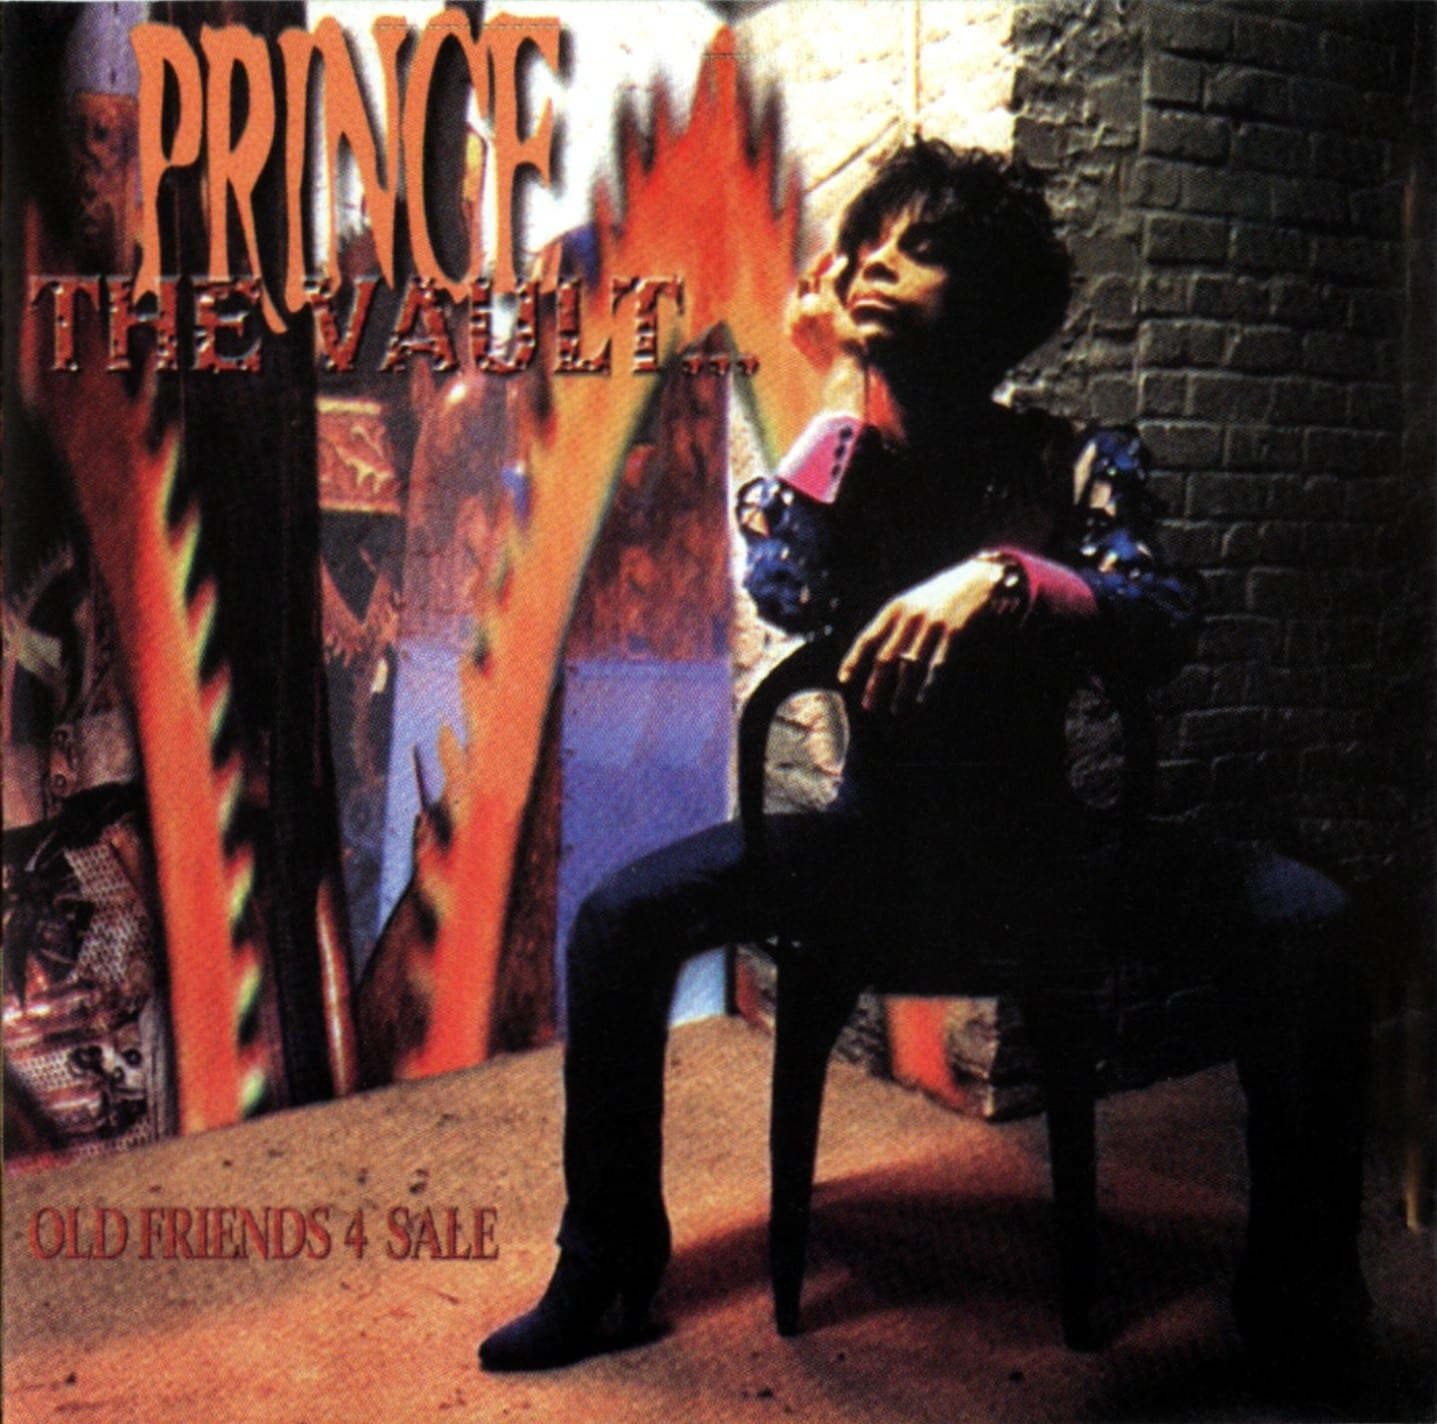 Prince - The Vault - Old Friends 4 Sale (1999) CD 11